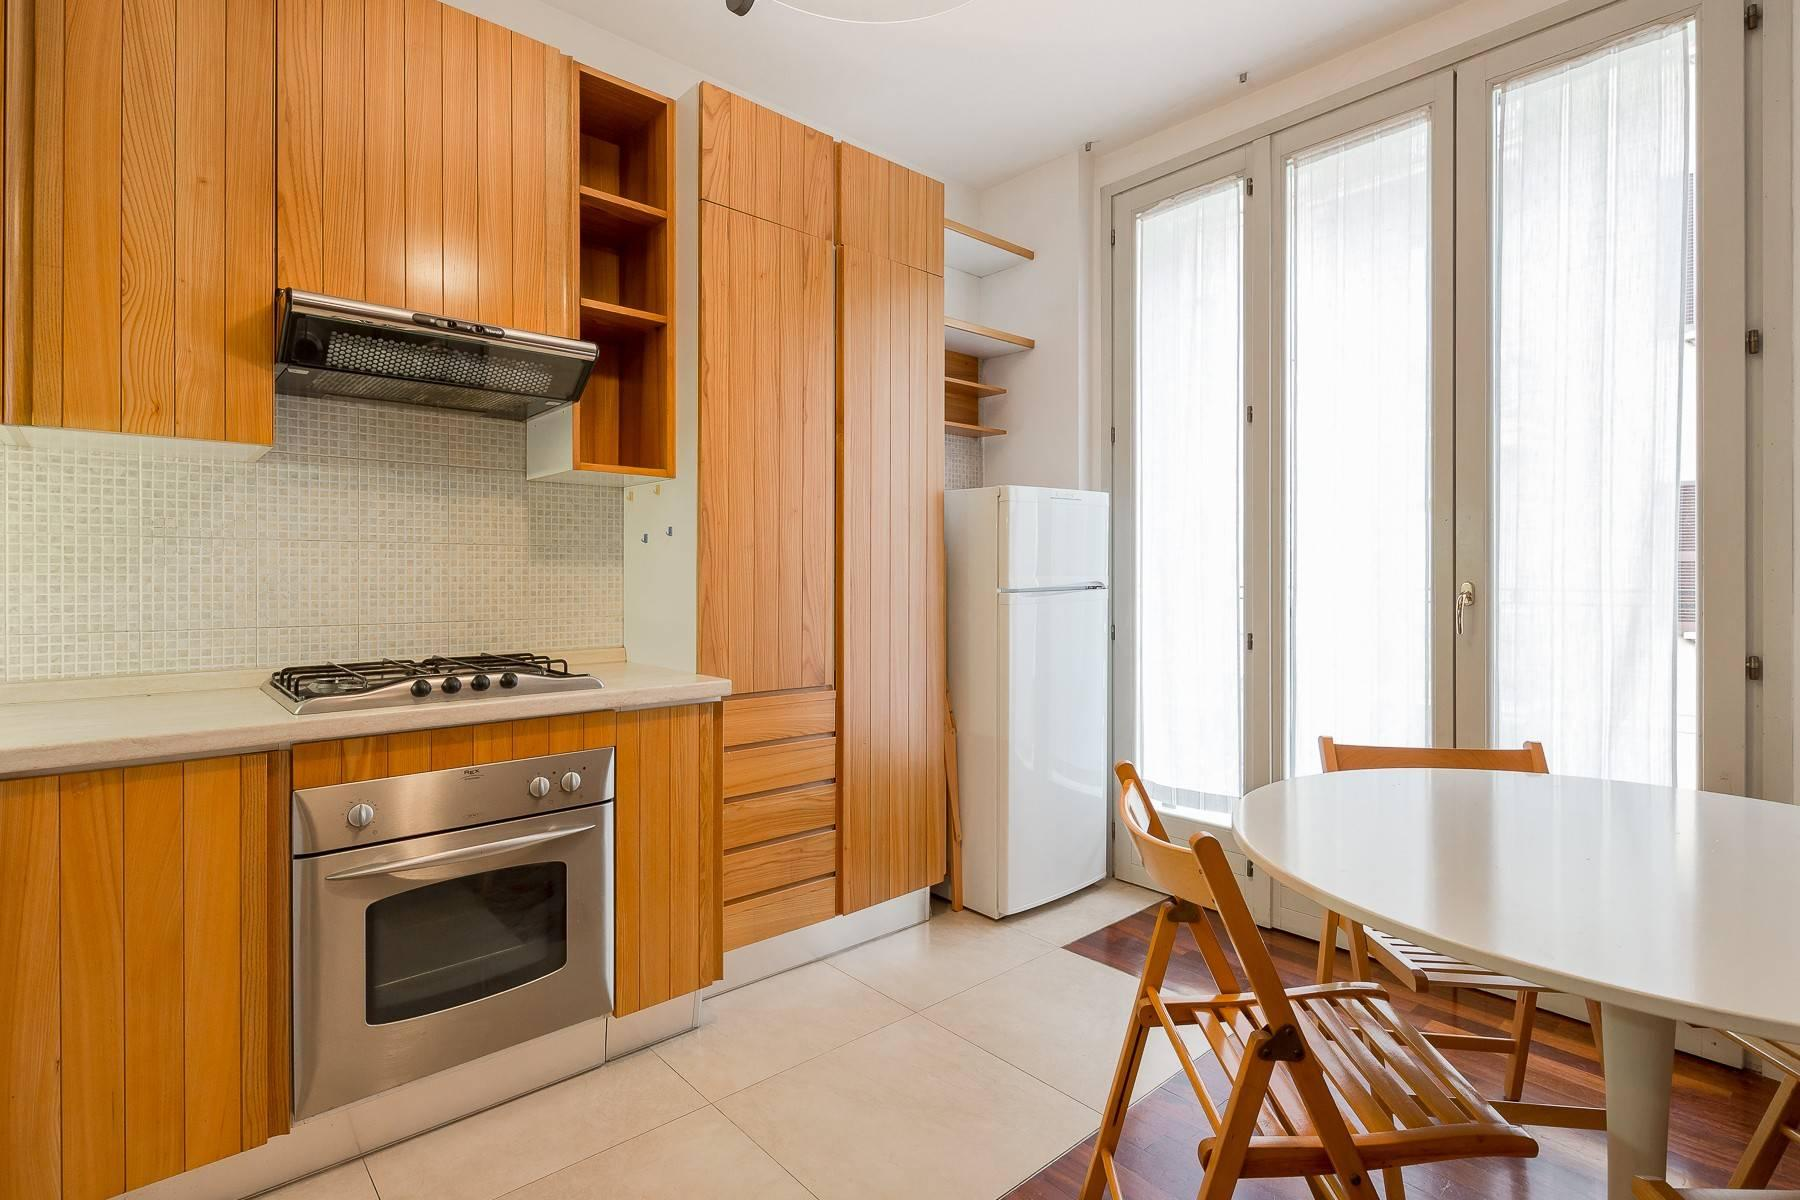 One-bedroom apartment in the Isola area - 4